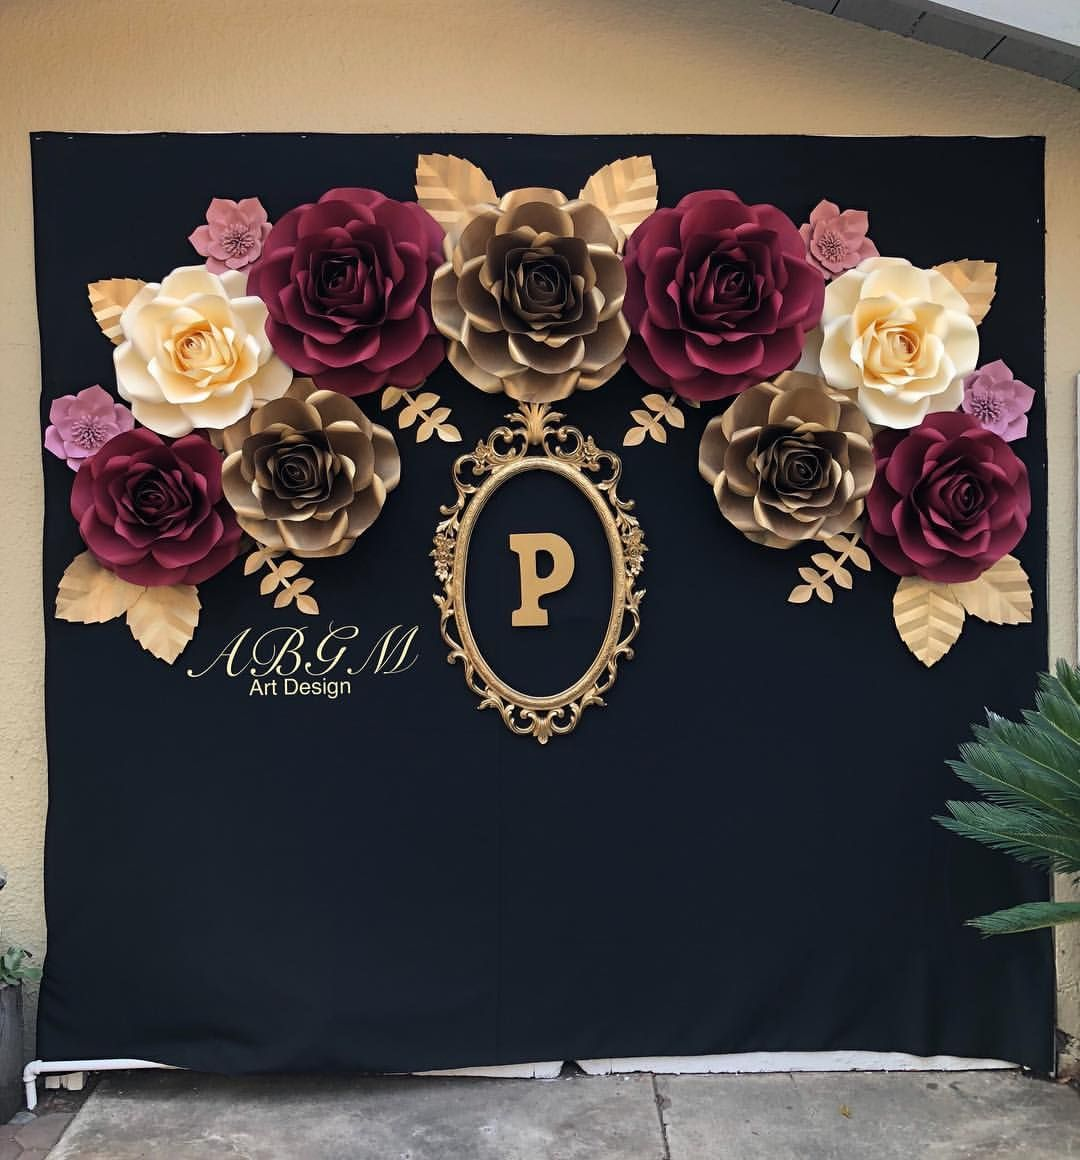 A Beautiful Backdrop Of Roses Made For Perlas Birthday Party Thank